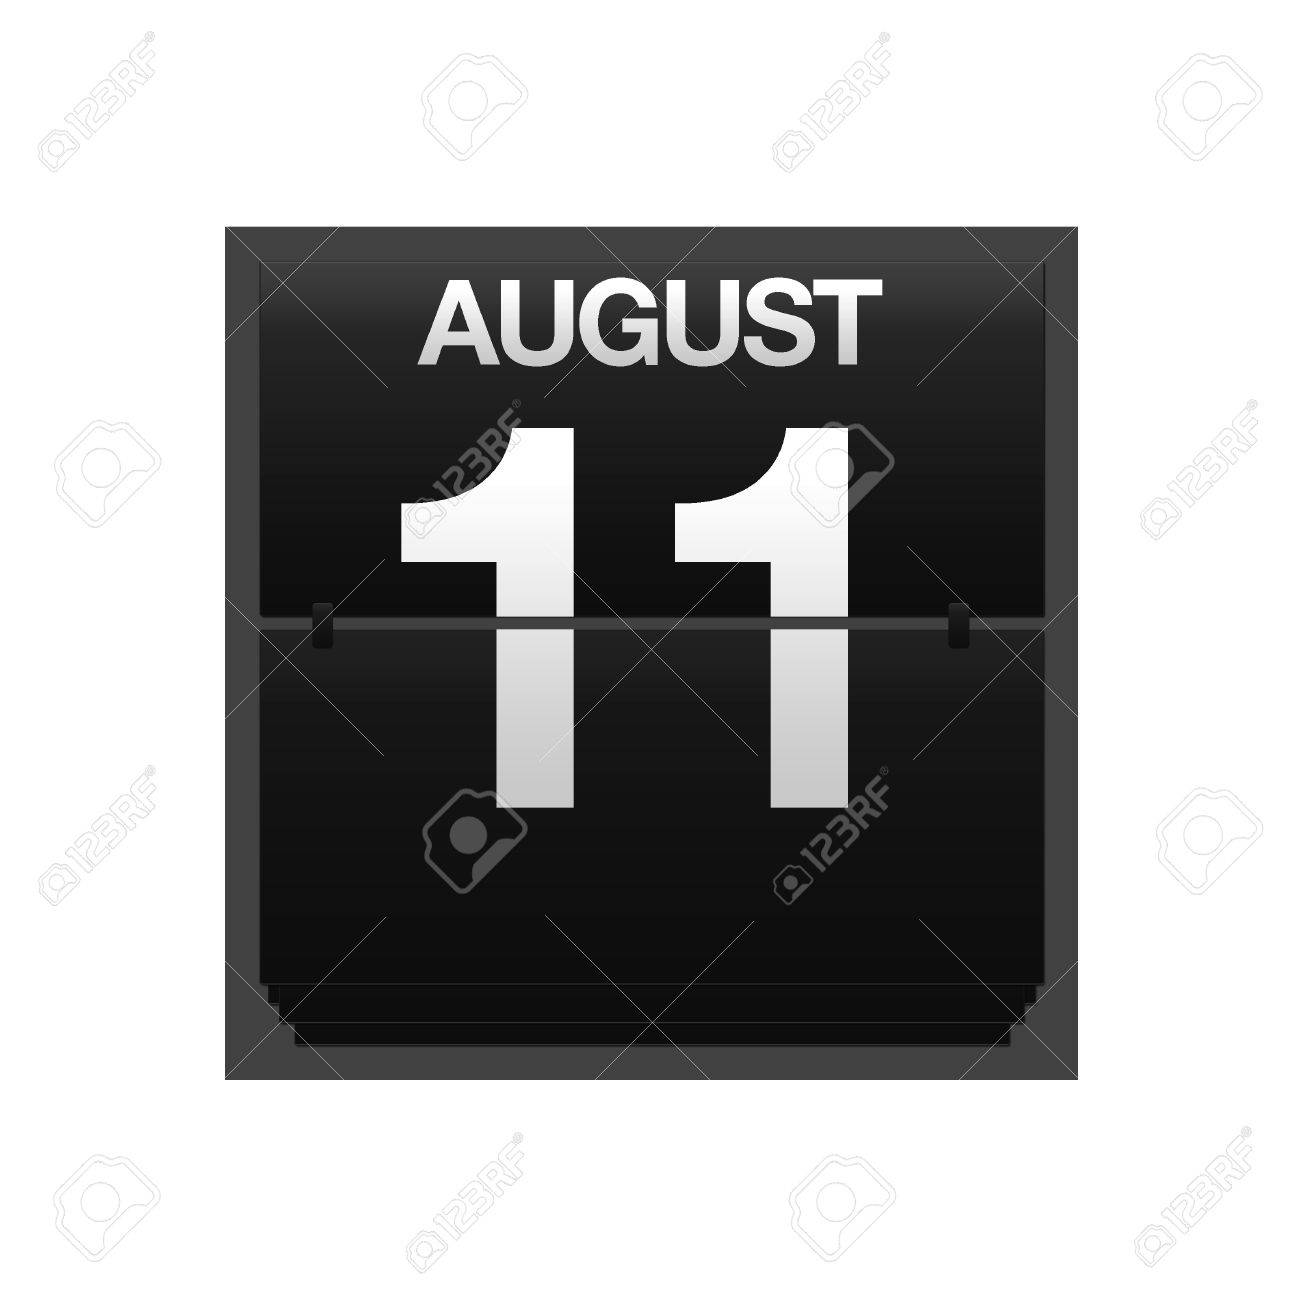 Illustration with a counter calendar august 11 Stock Photo - 15707409